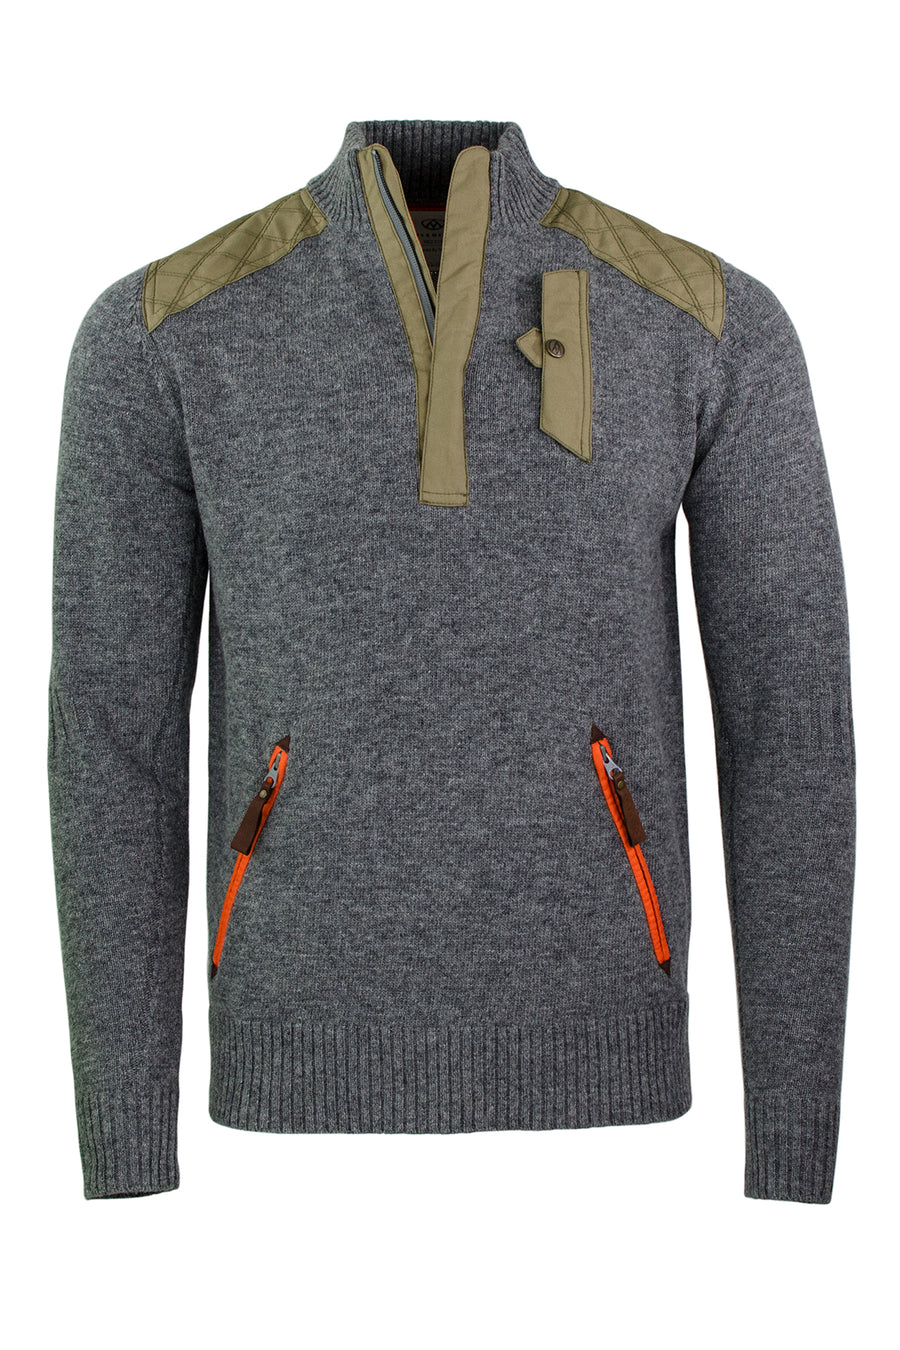 Alps & Meters M-Alpine Guide Men's Sweater